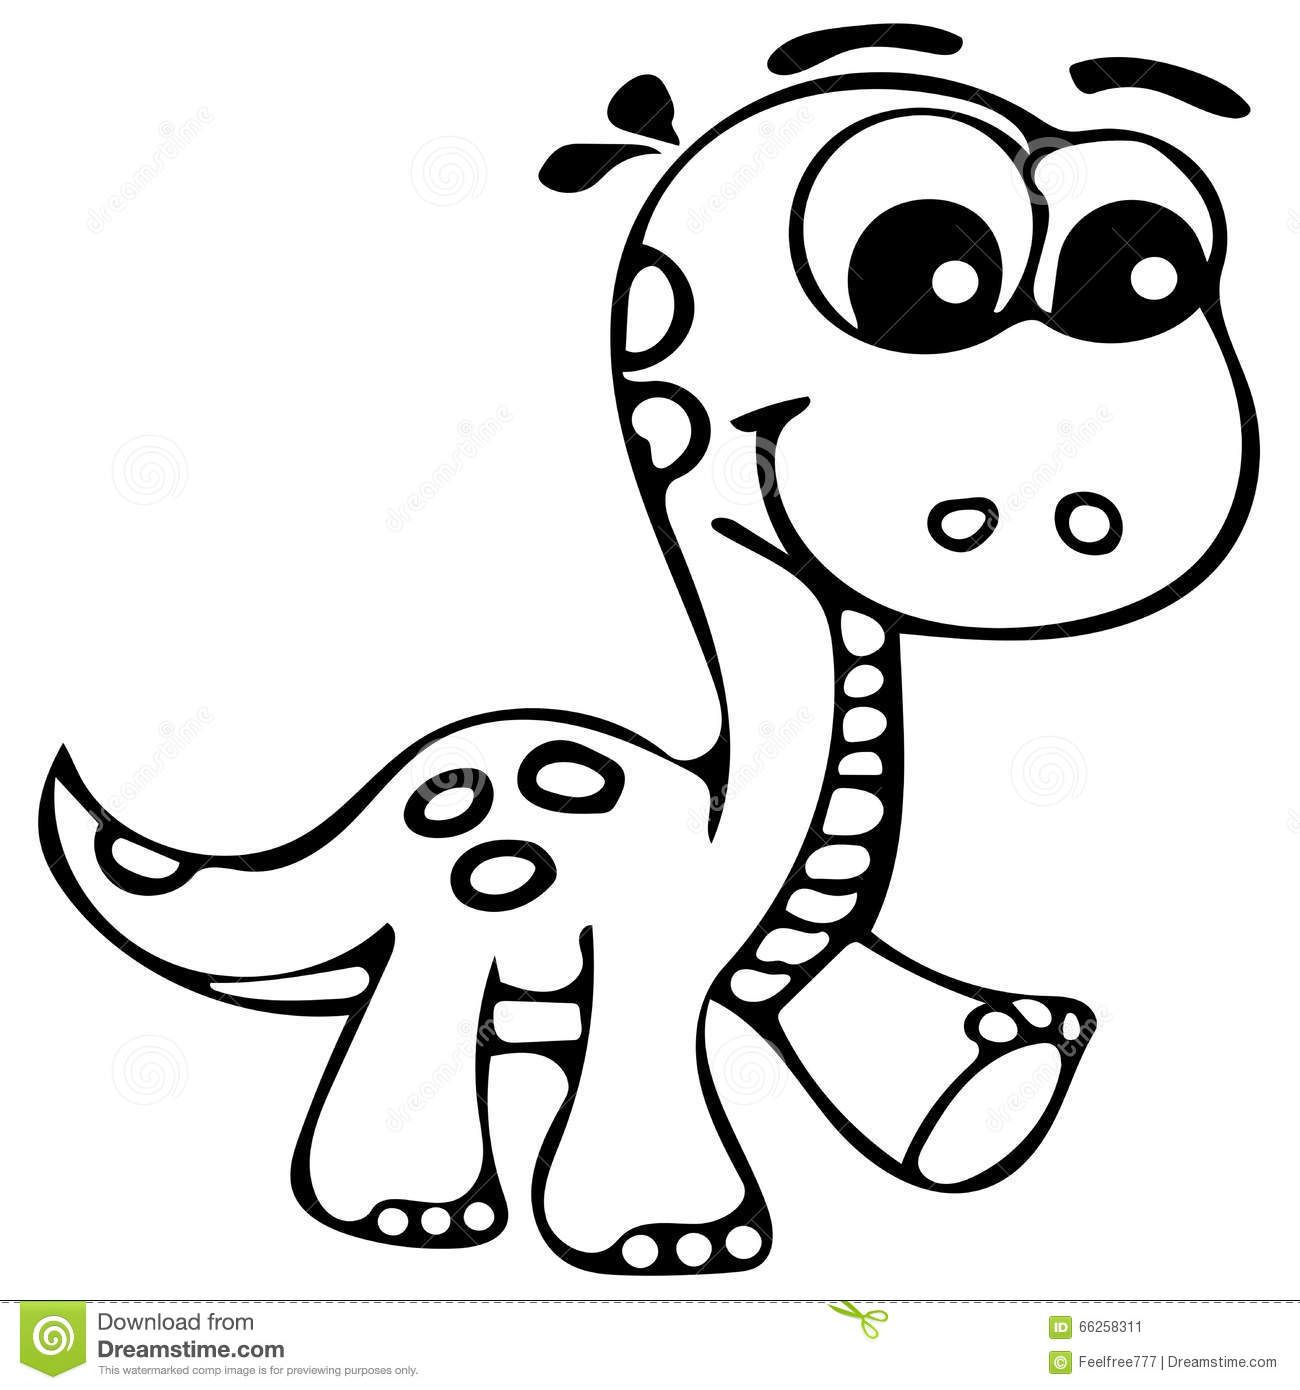 printable pictures of dinosaurs dinosaurs to print triceratops dinosaurs kids coloring printable dinosaurs pictures of